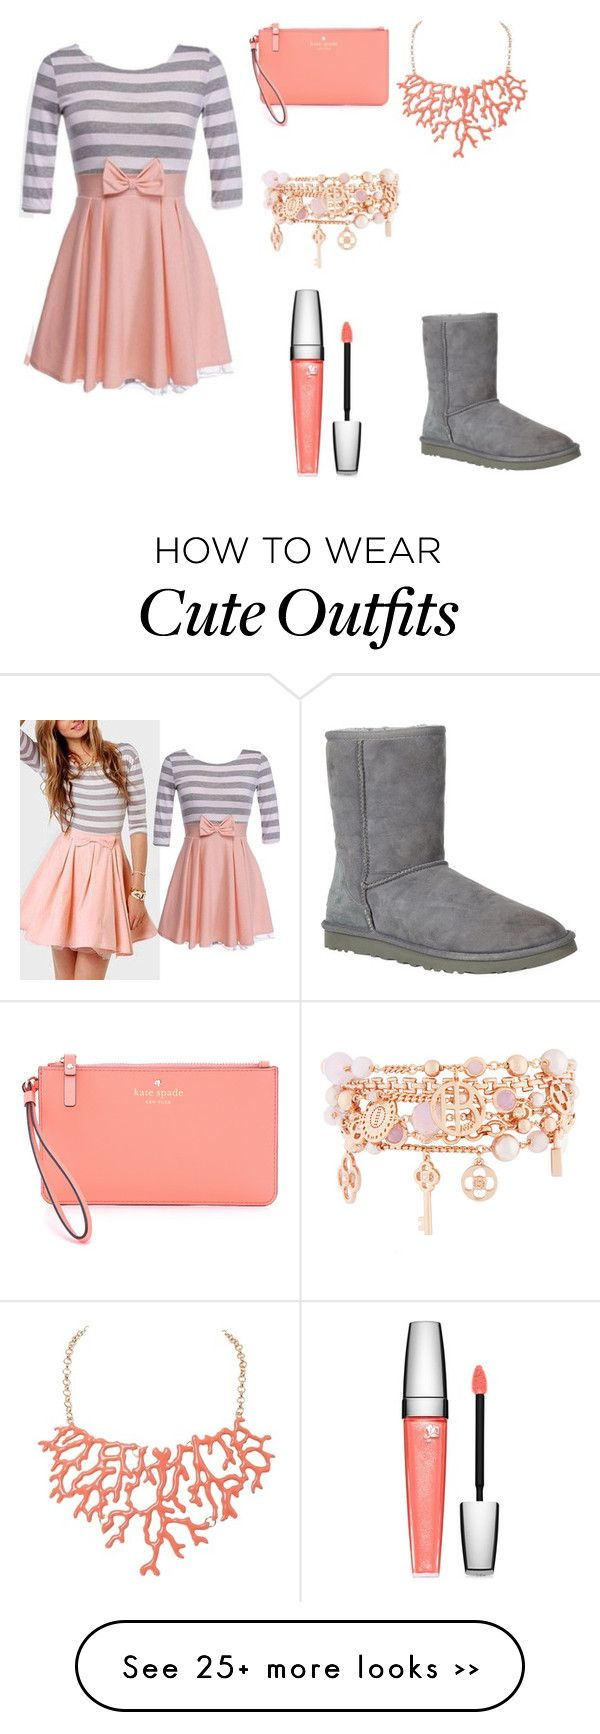 """""""Cute outfit"""" by stylecelb on Polyvore"""